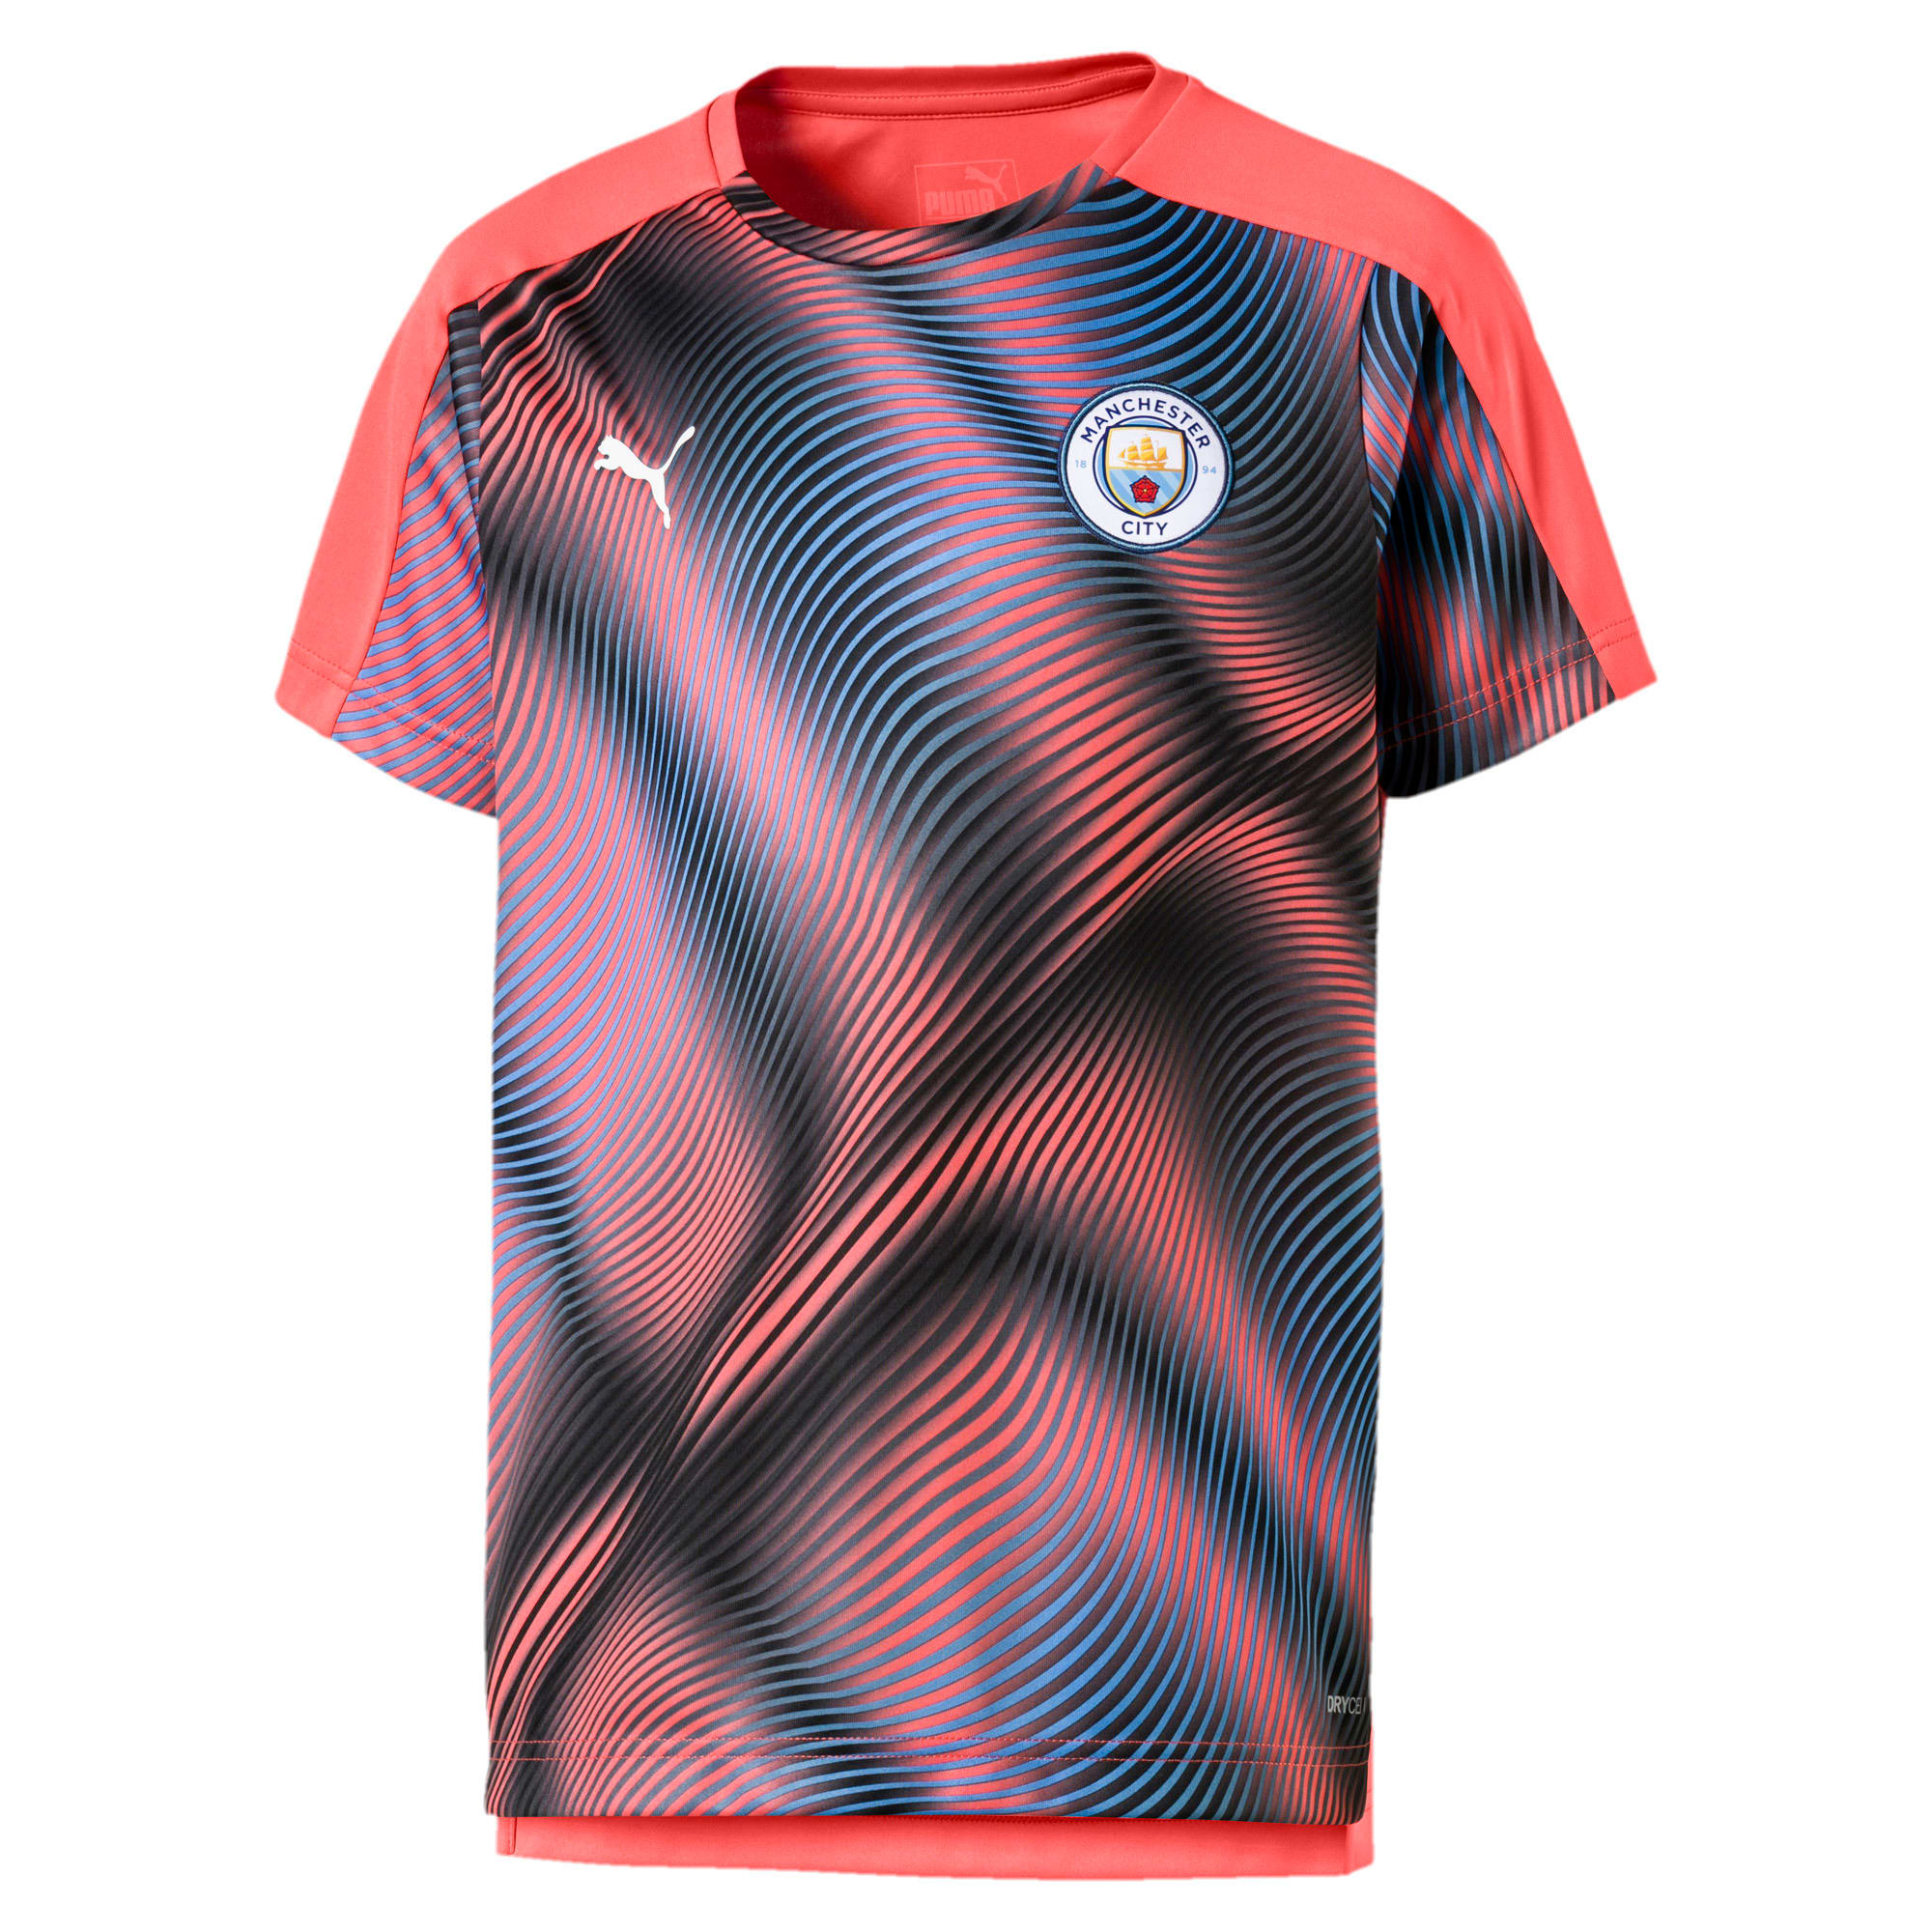 Thumbnail 1 of Man City Stadium League Kids' Jersey, Georgia Peach-Puma Black, medium